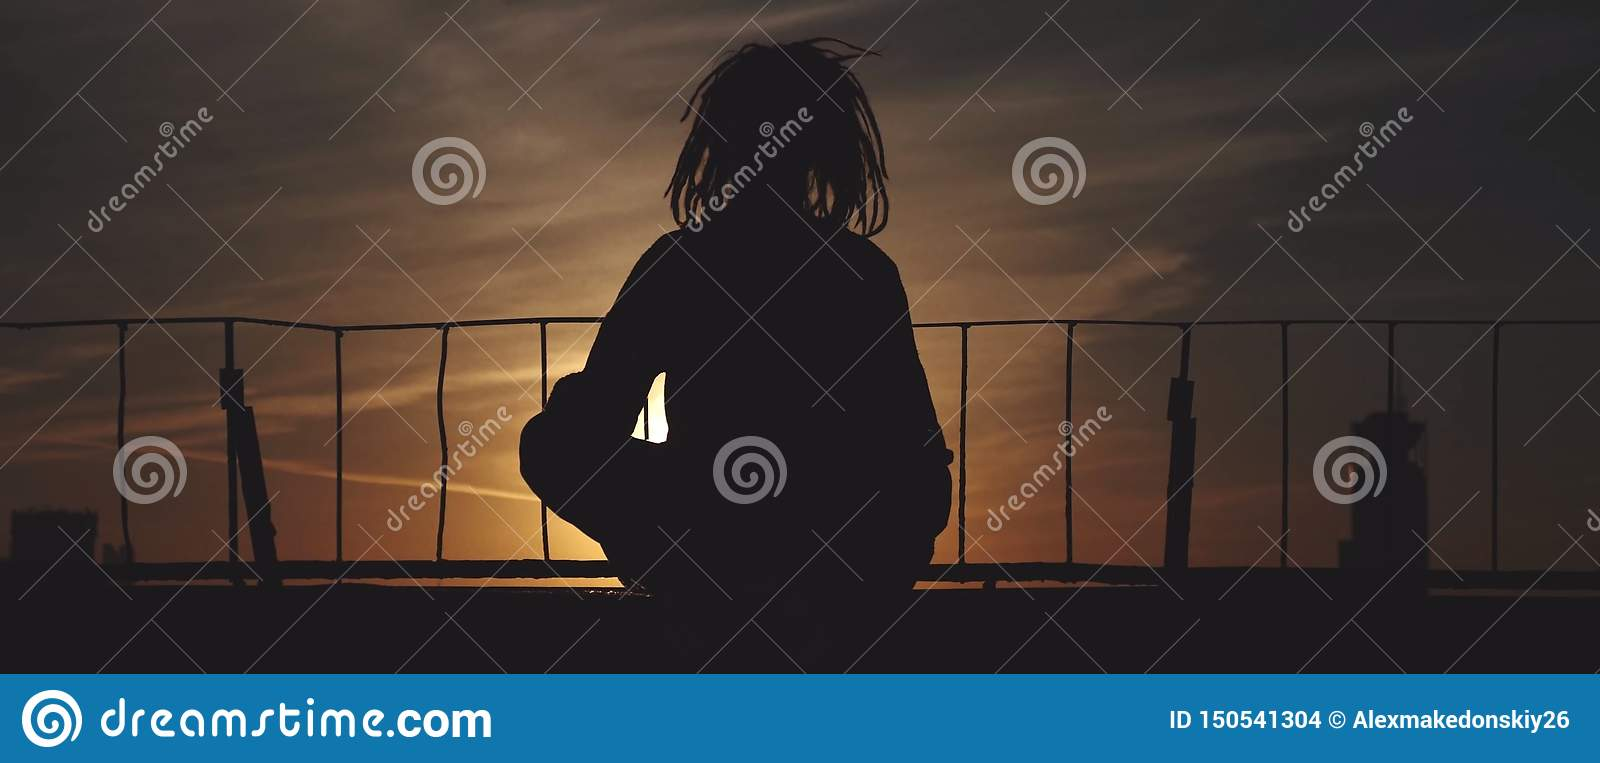 Silhouette of woman on the bridge